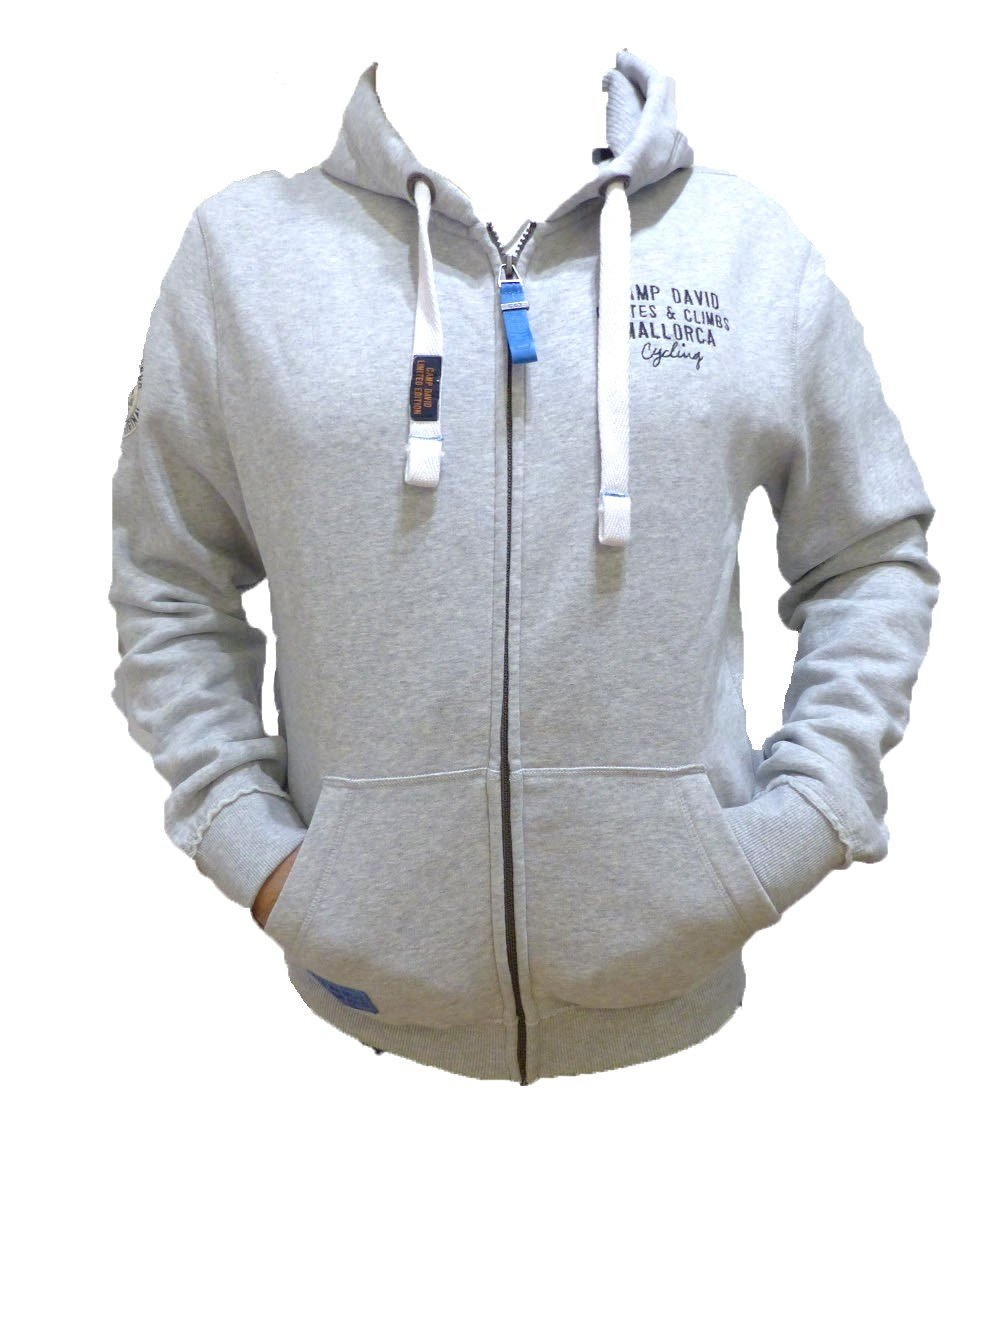 f80f0c9967fd CCU 5555 3912 GR Camp David Kapuzenjacke mit Artwork am Rücken Grey M   Amazon.de  Sport   Freizeit